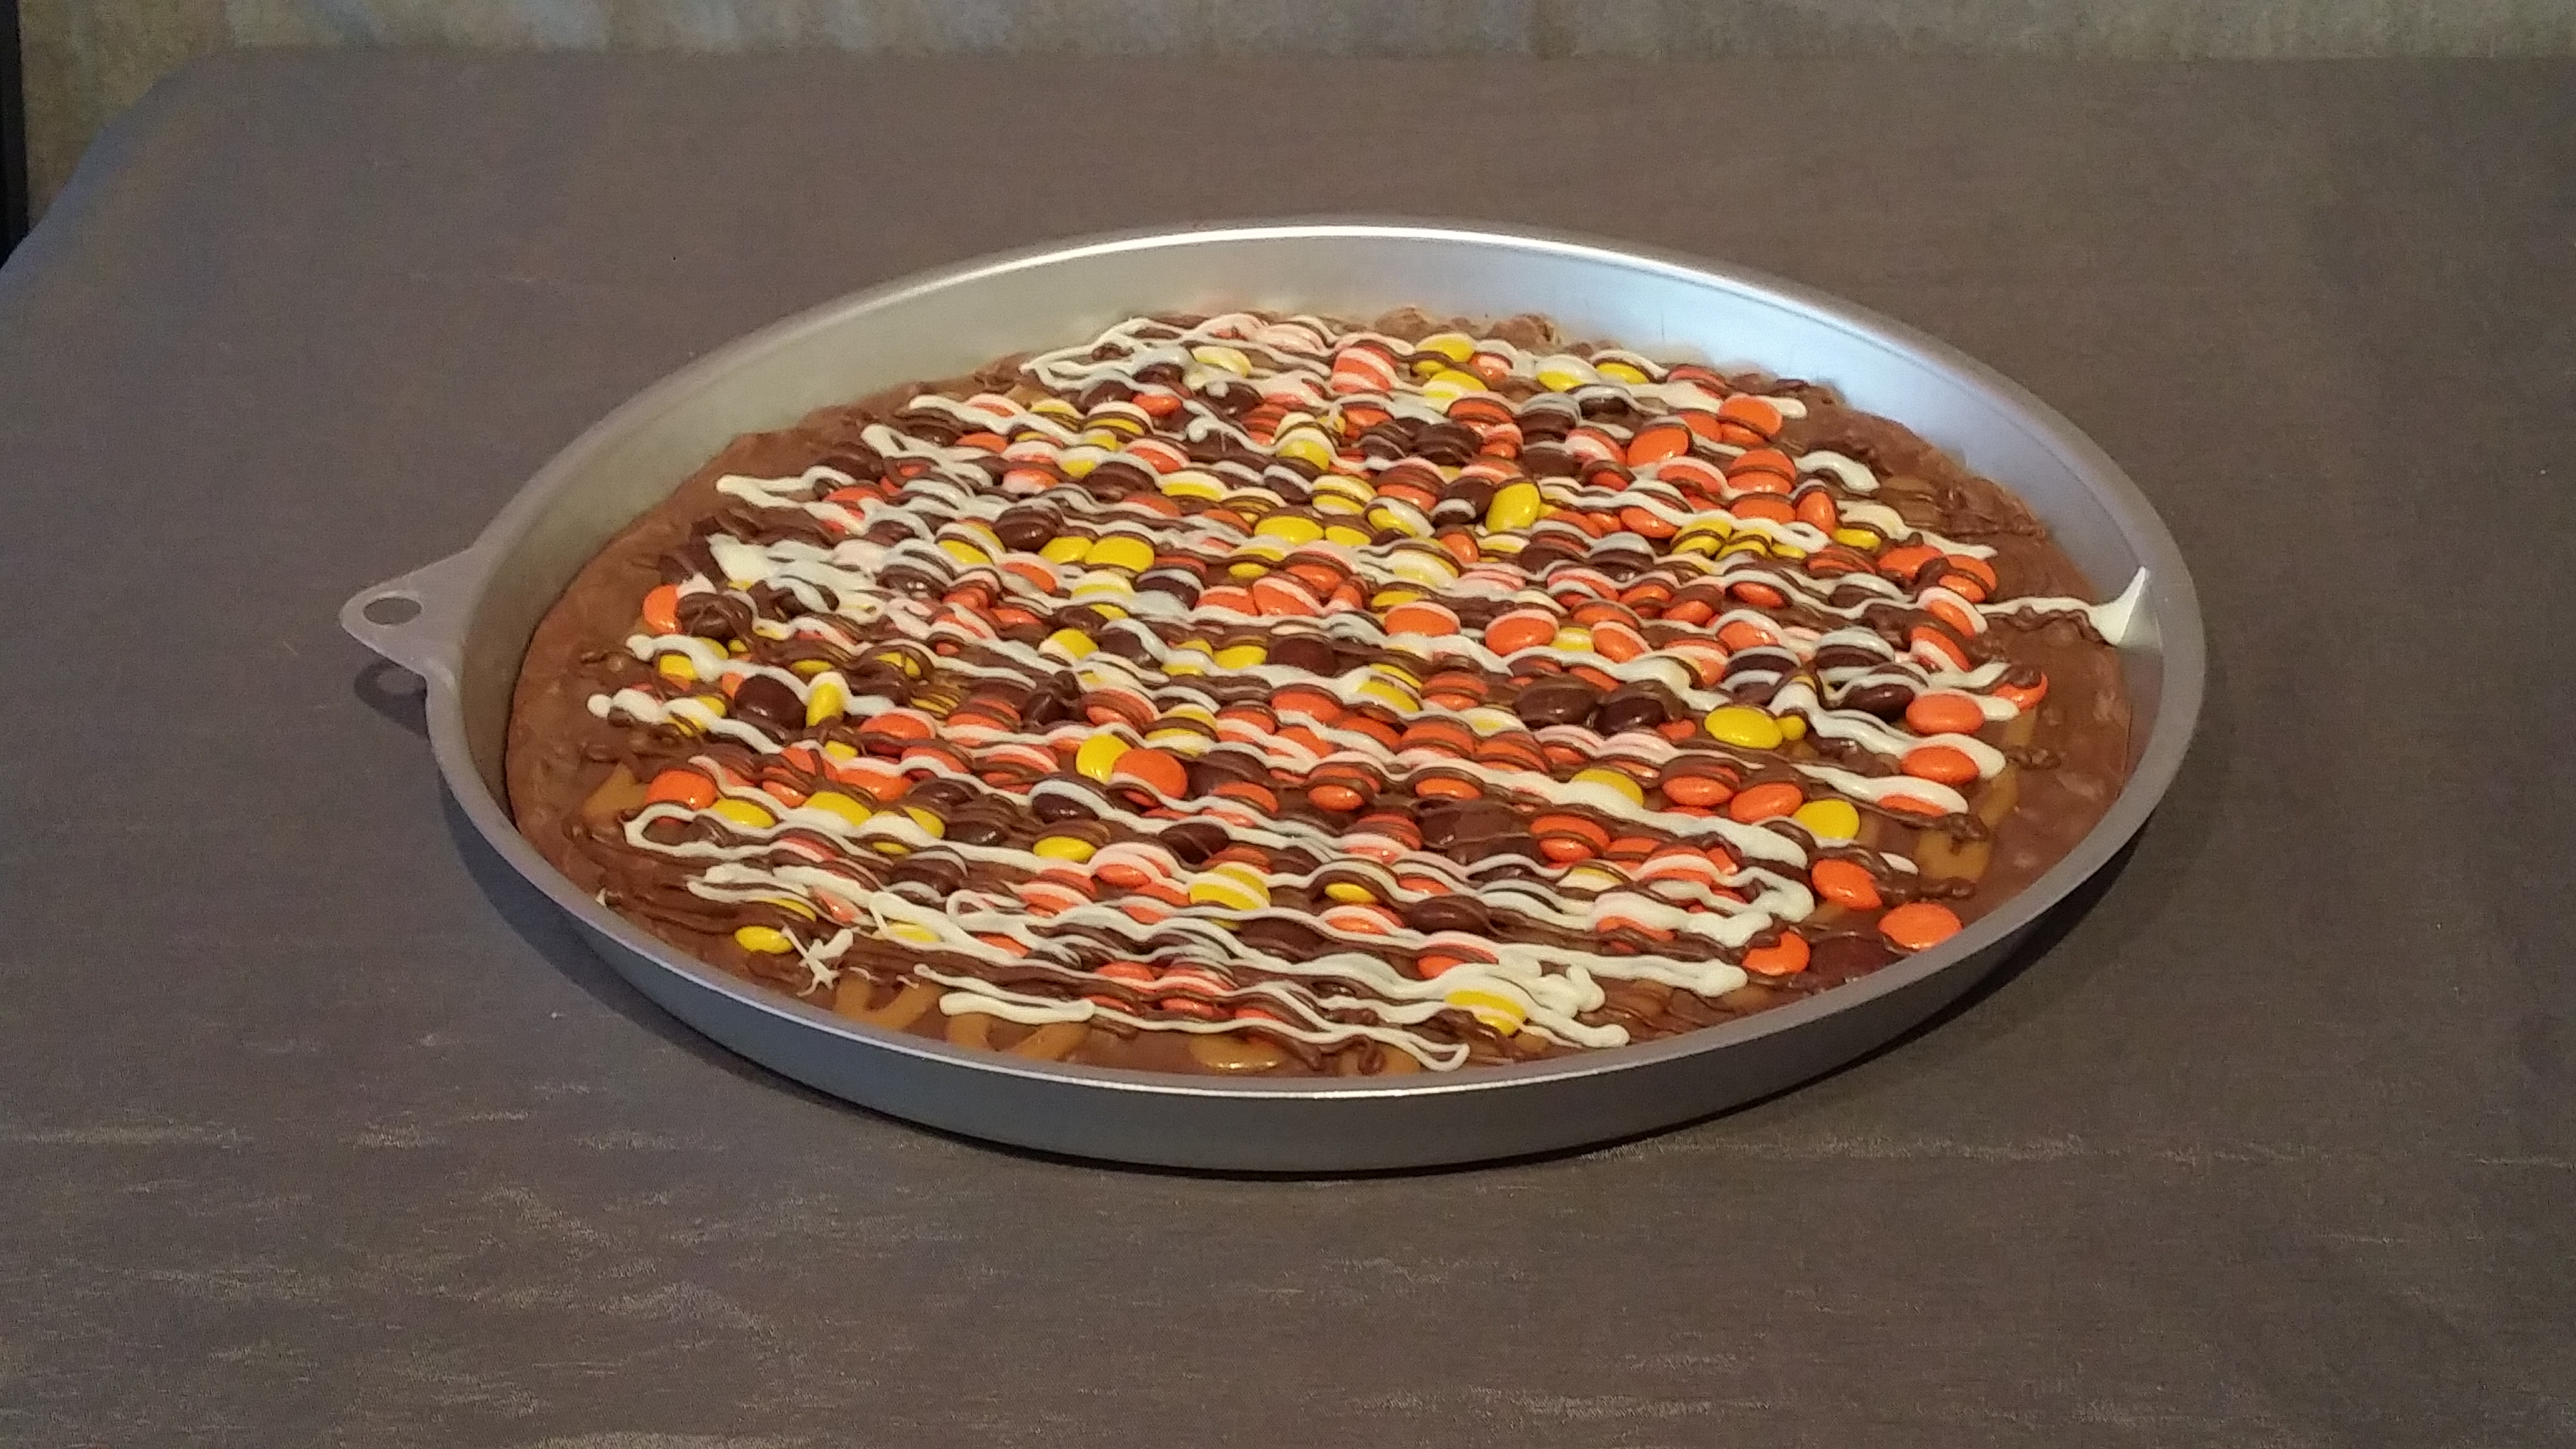 Reese's Pieces Chocolate Pizza